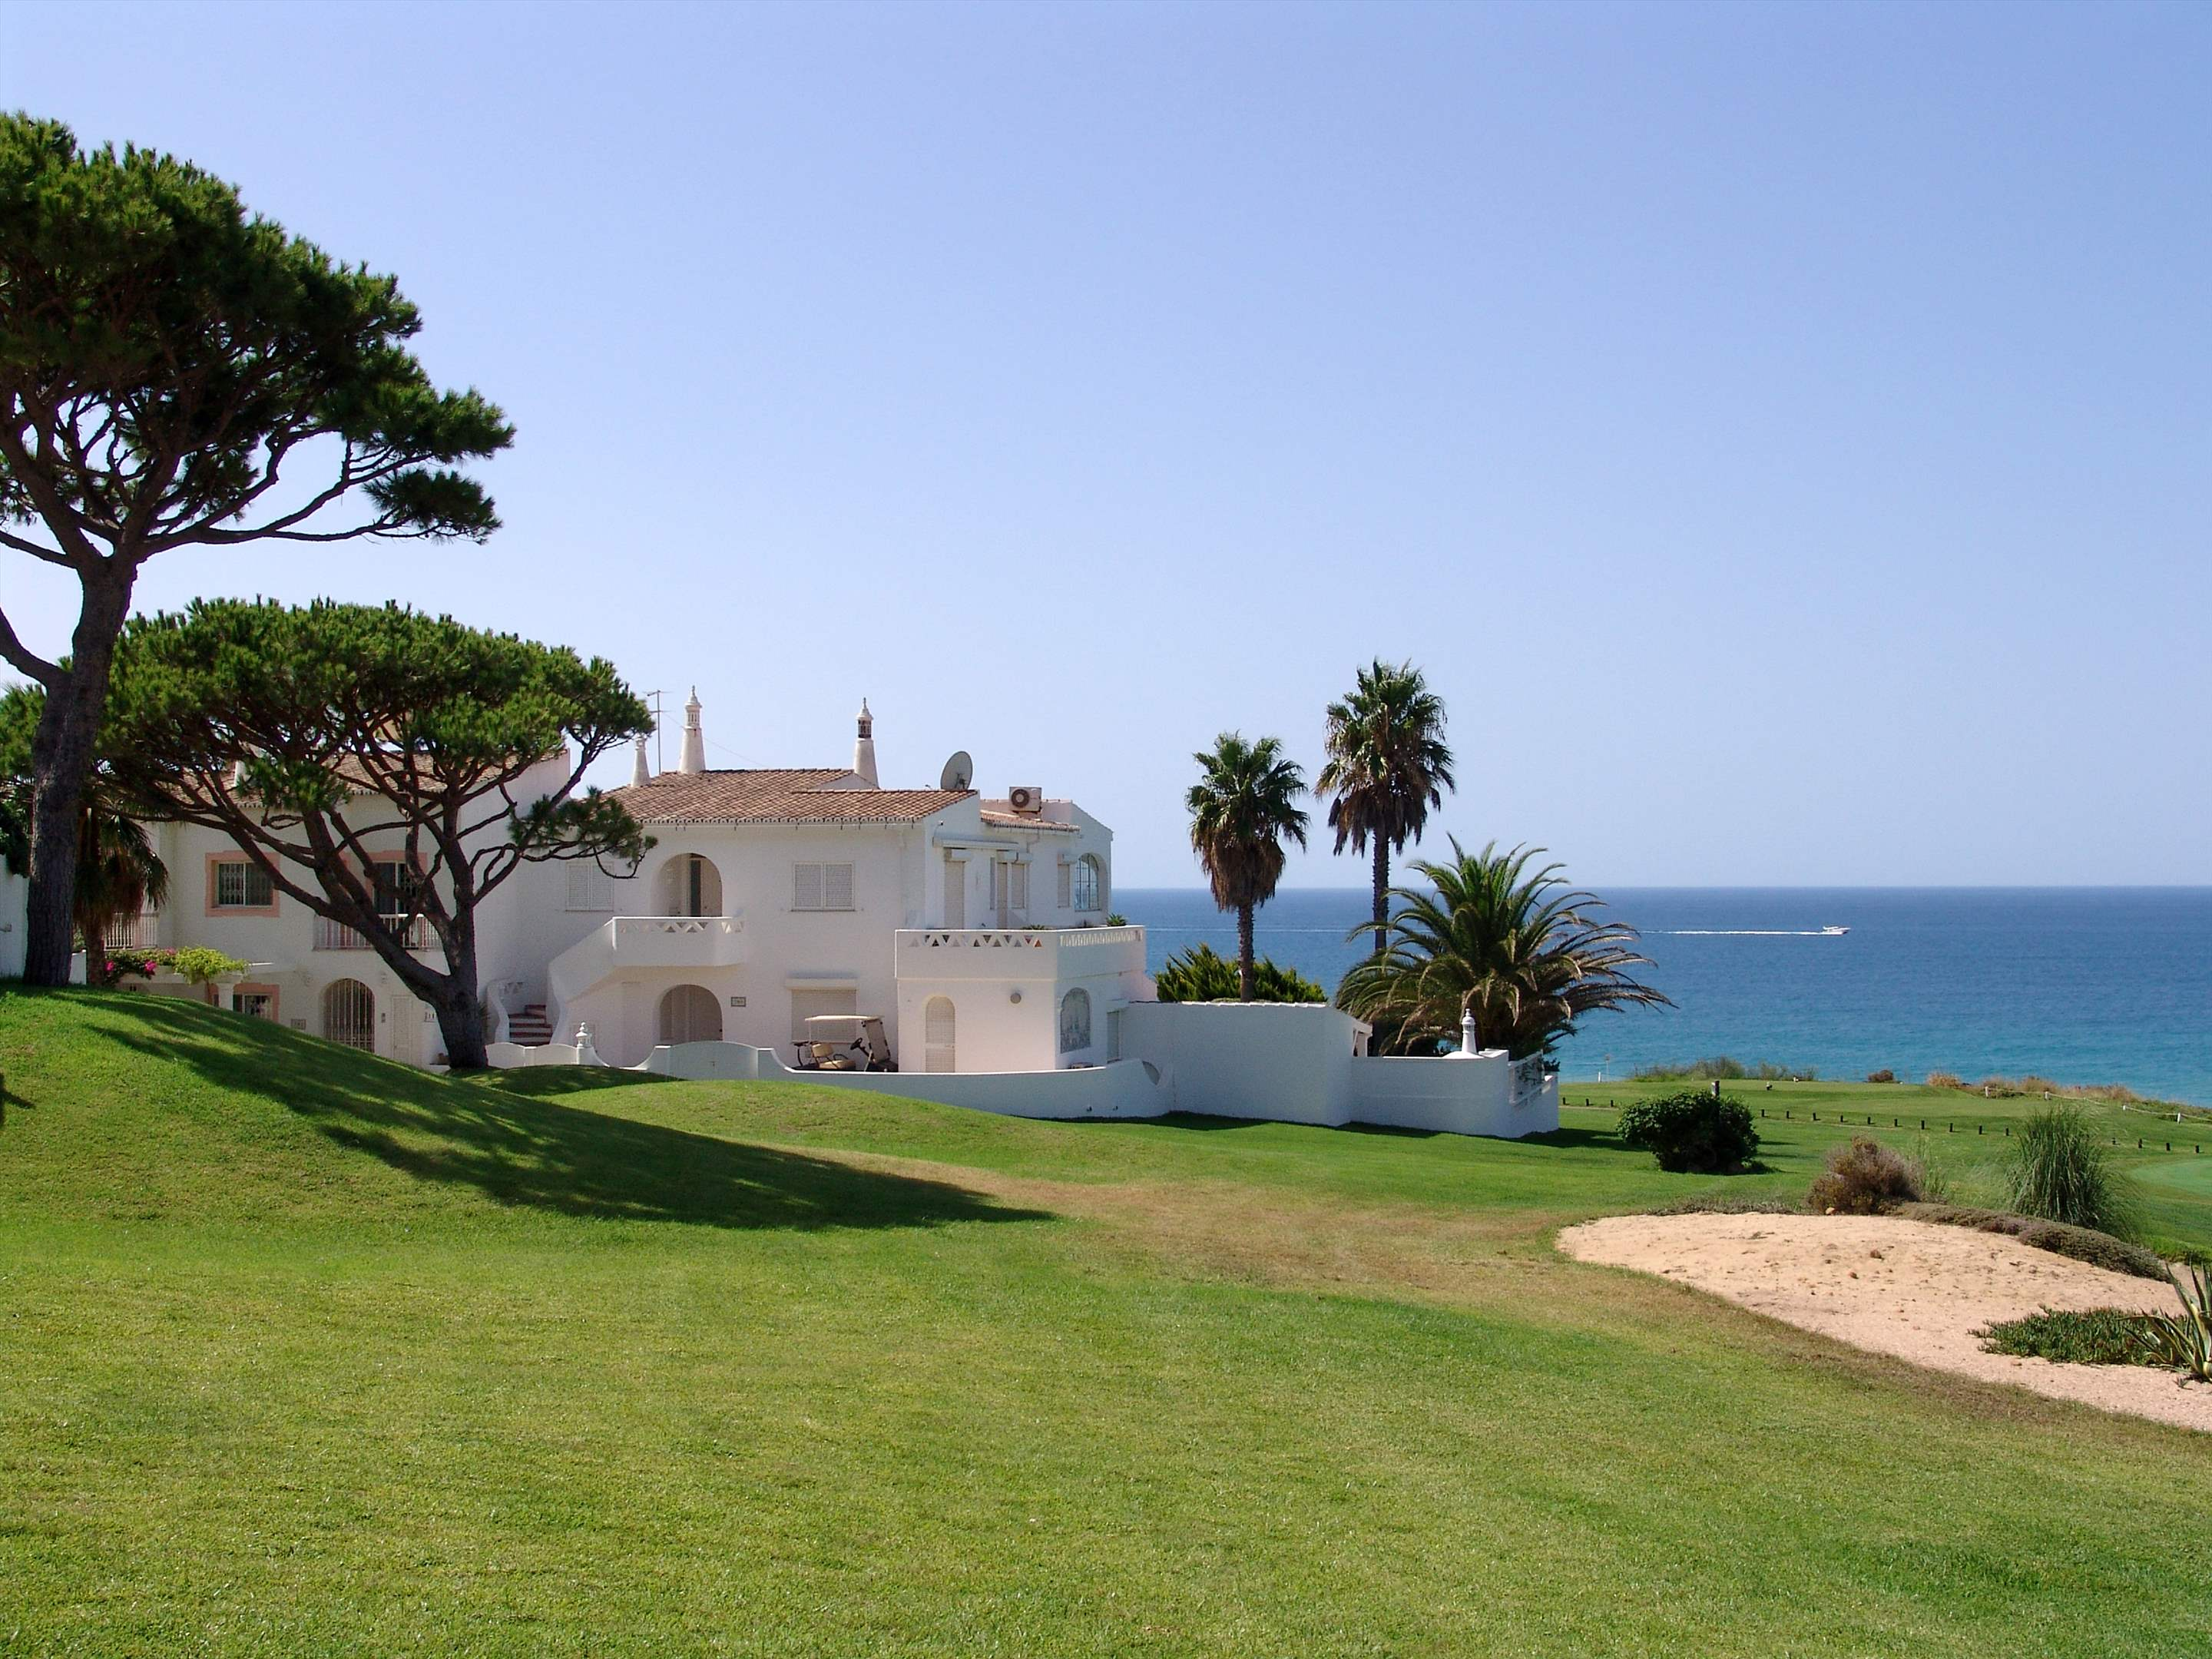 Villas Louisa, 4 Bedroom, 4 bedroom villa in Vale do Lobo, Algarve Photo #26